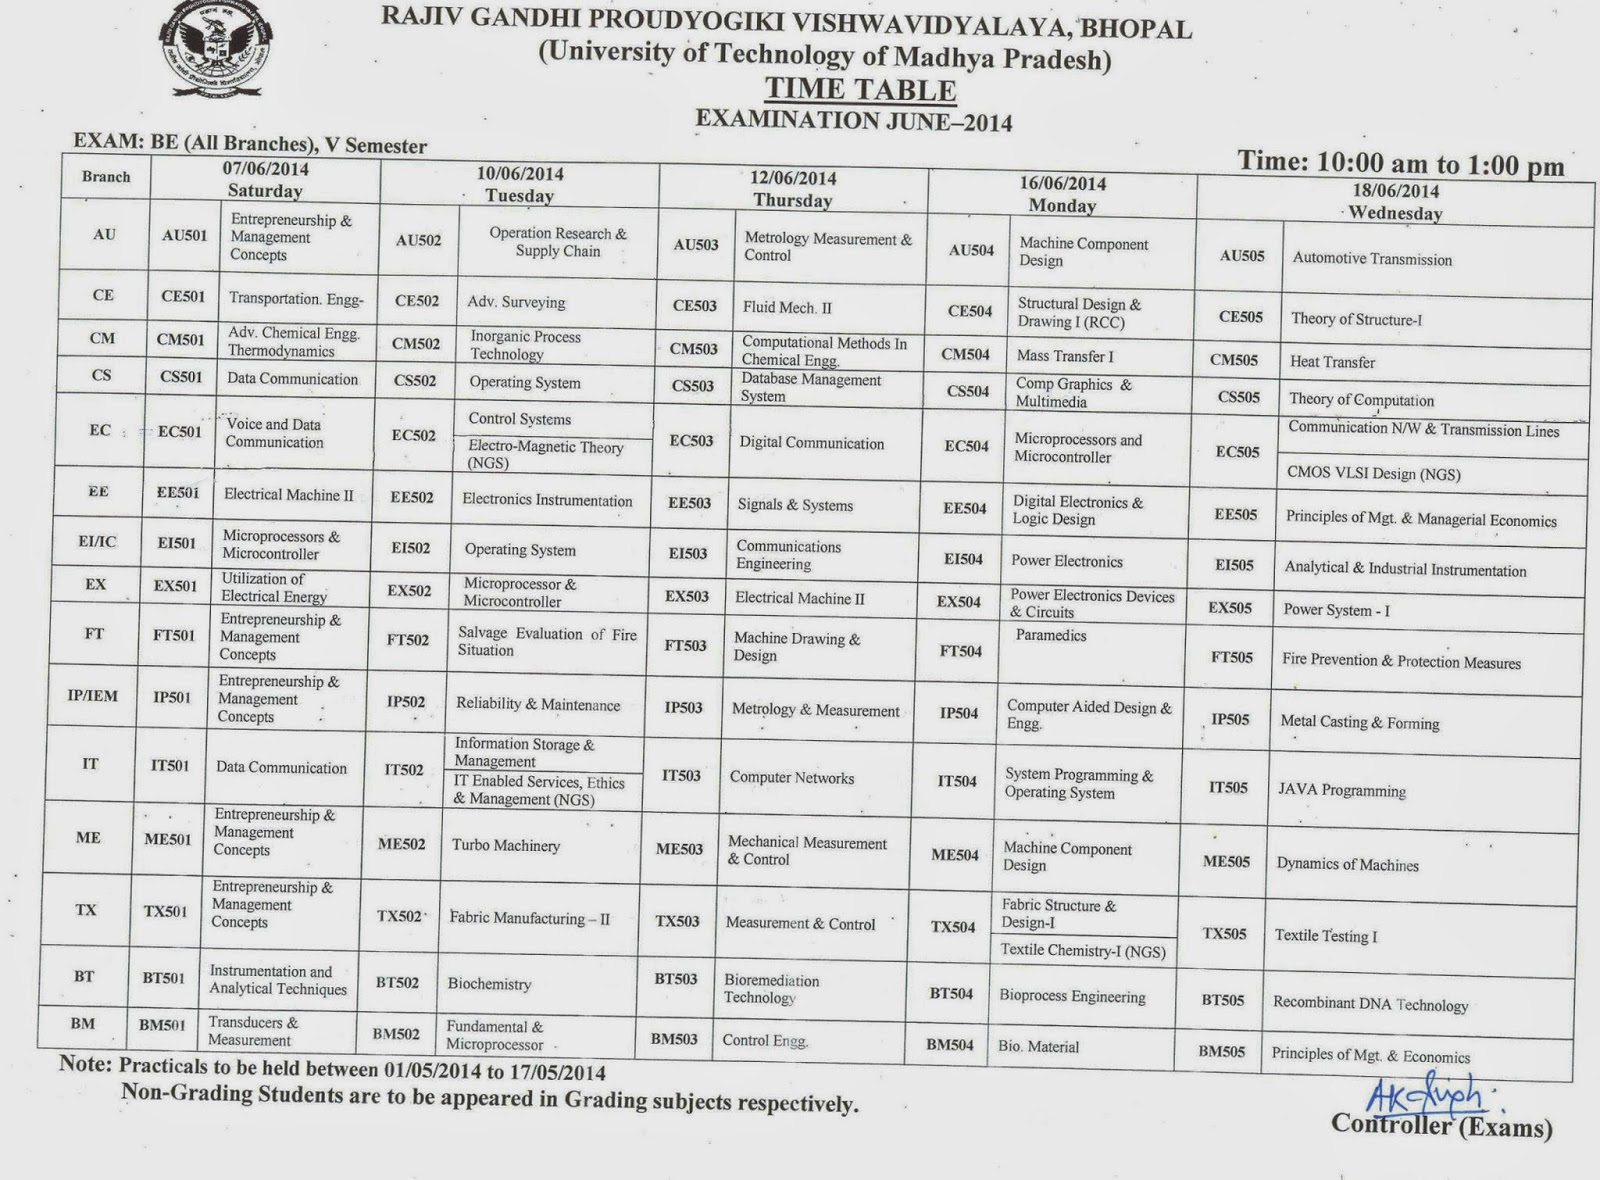 April 2014 rajiv gandhi proudyogiki vishwavidyalaya for 6th sem time table